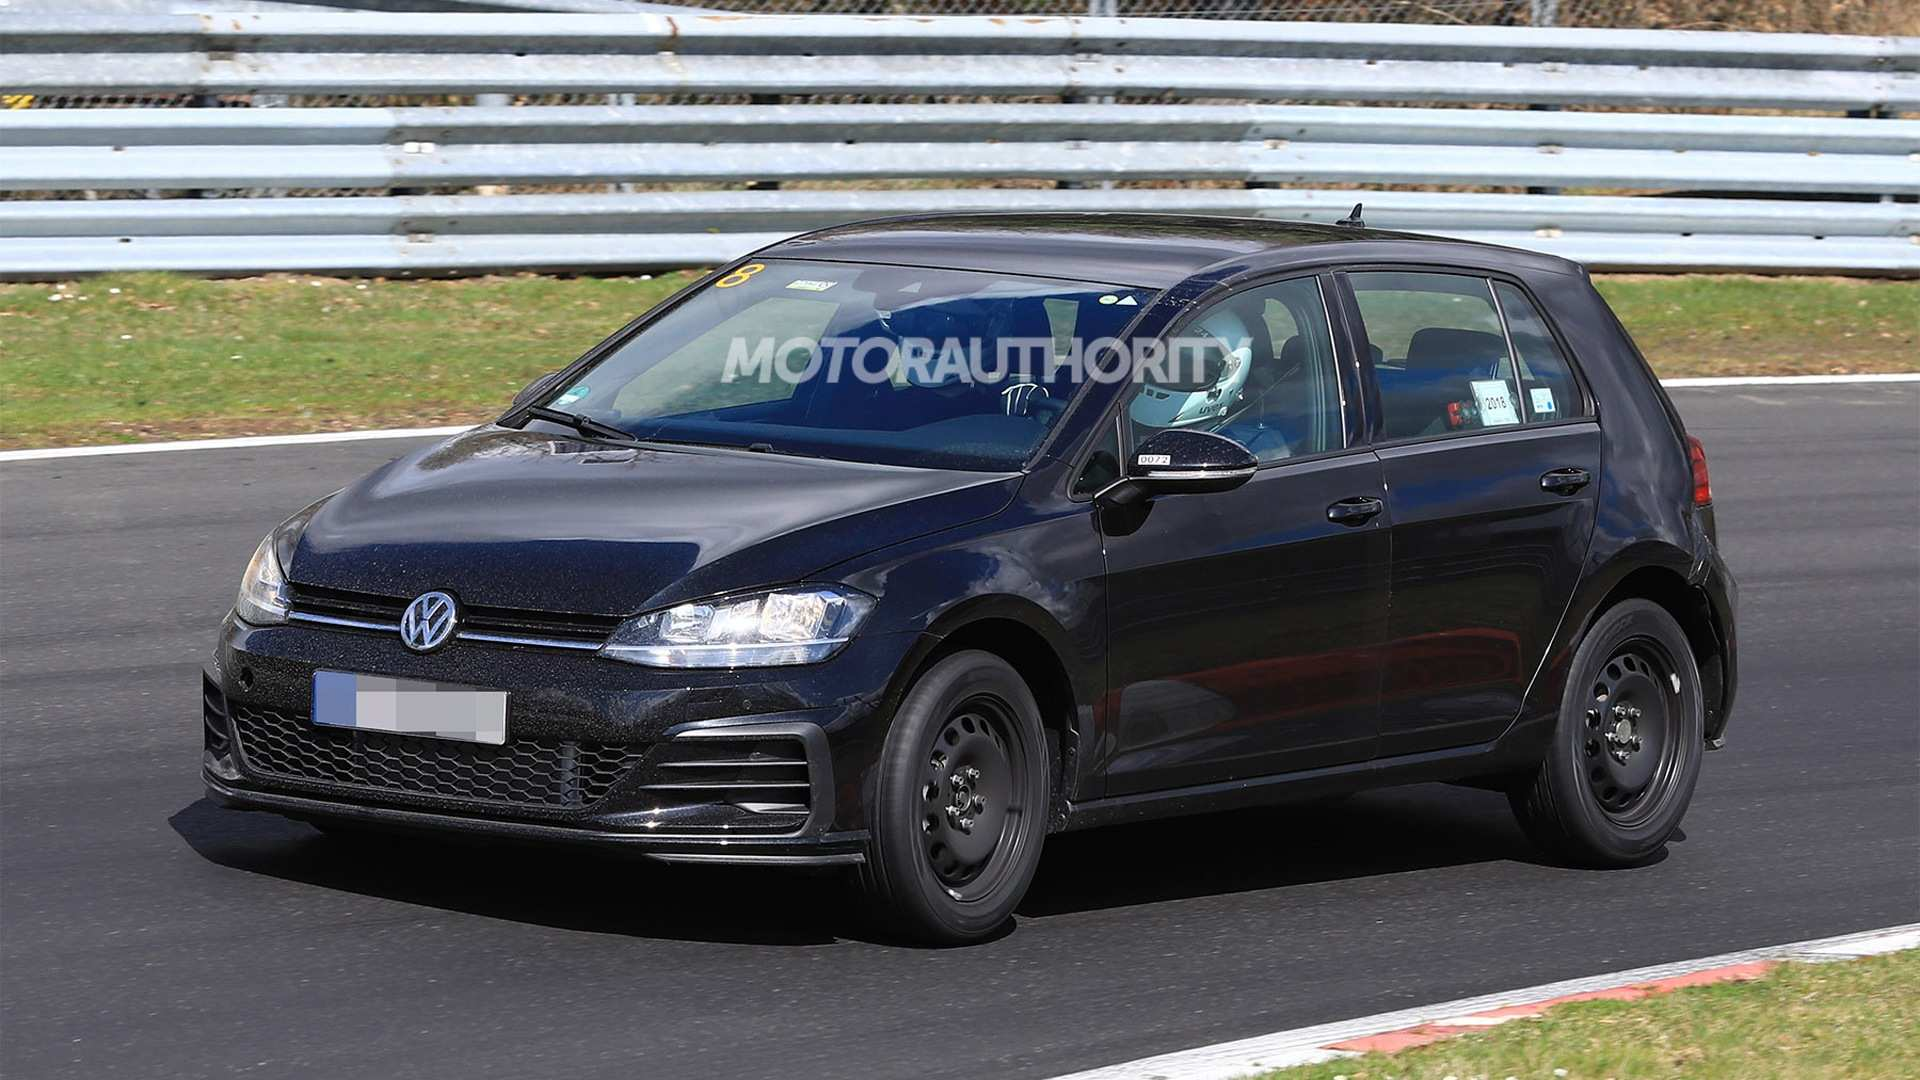 81 Concept of 2020 Volkswagen Golf Sportwagen Engine with 2020 Volkswagen Golf Sportwagen